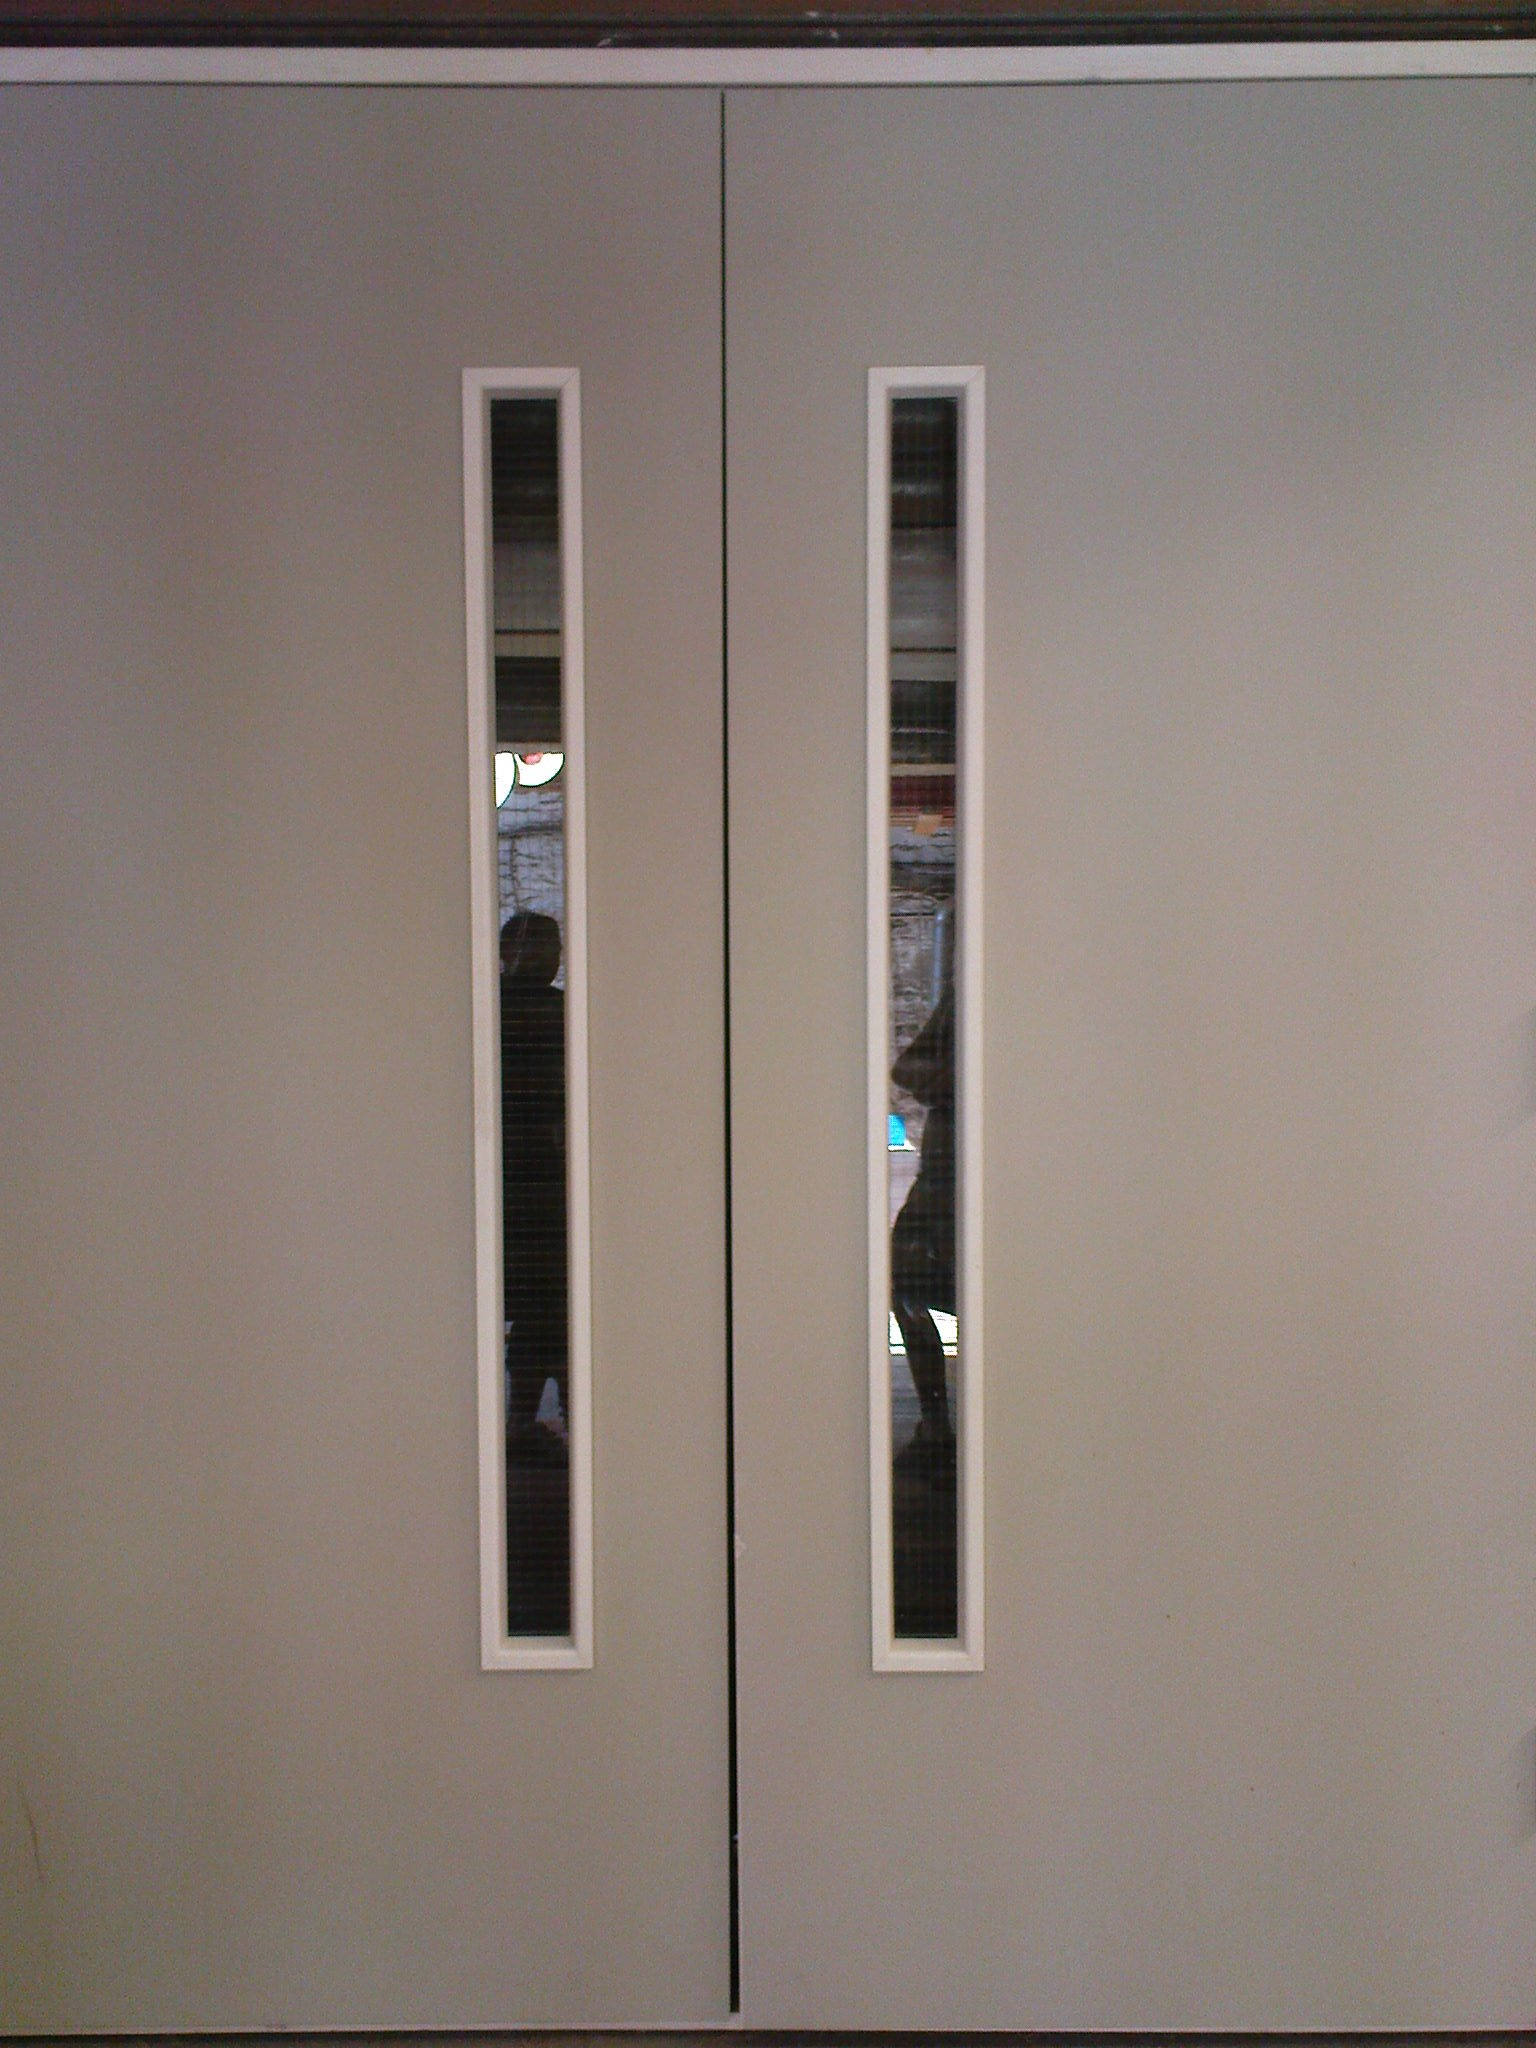 Latest news bespoke complete services ltd for Doors with panels